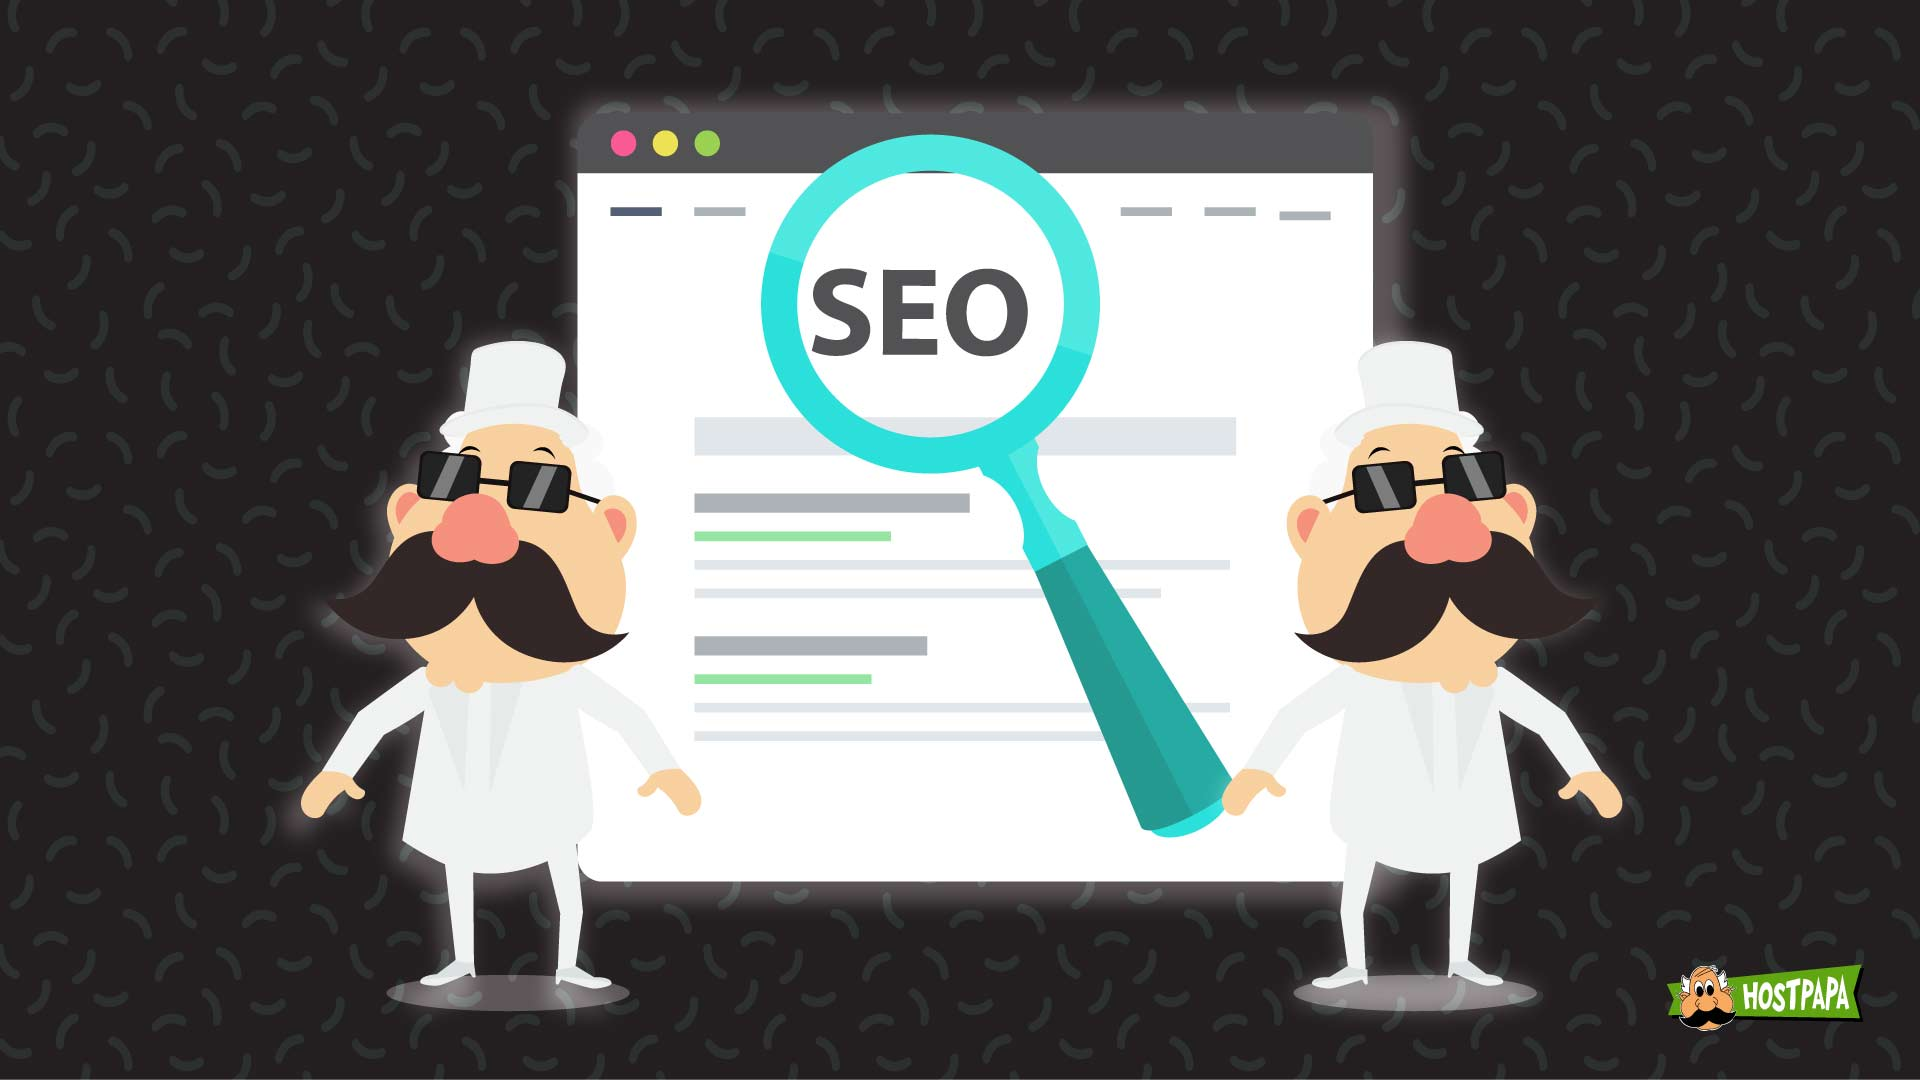 SEO Tactics You Should Avoid